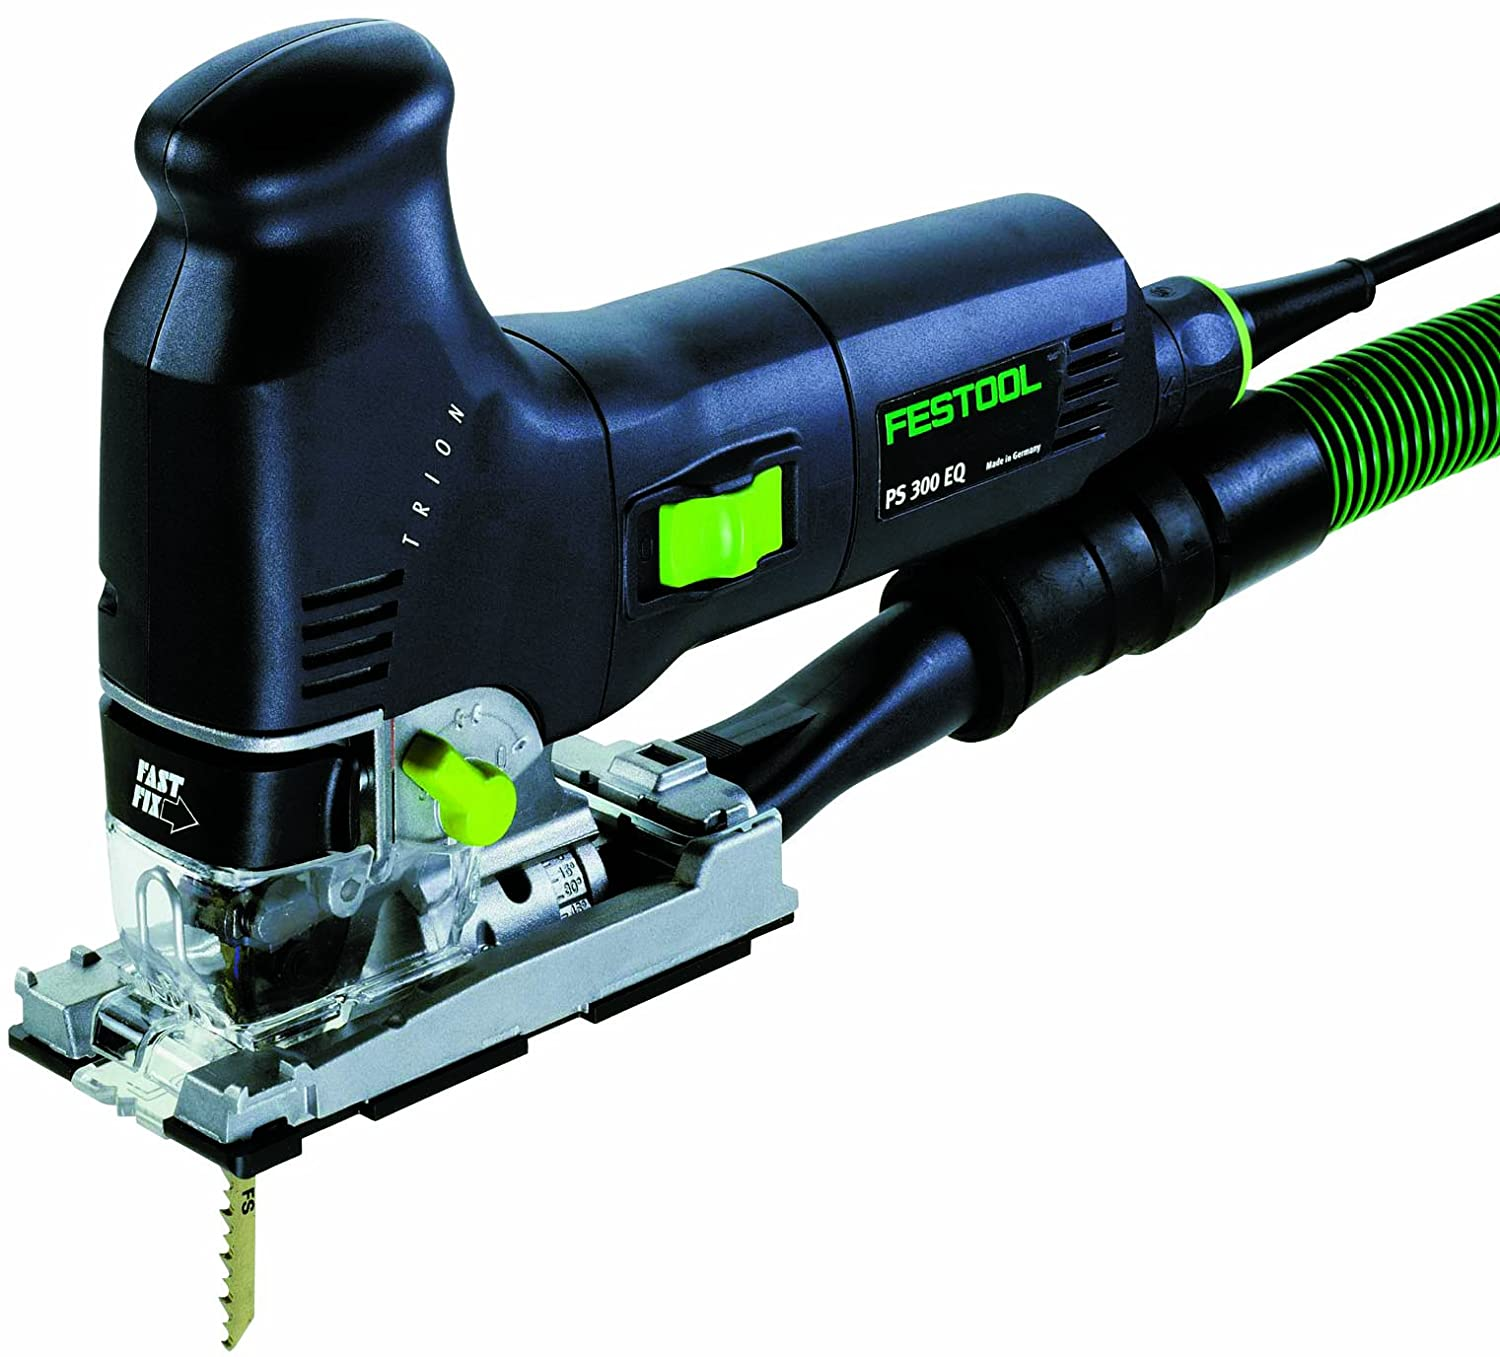 Festool chainsaw reviews